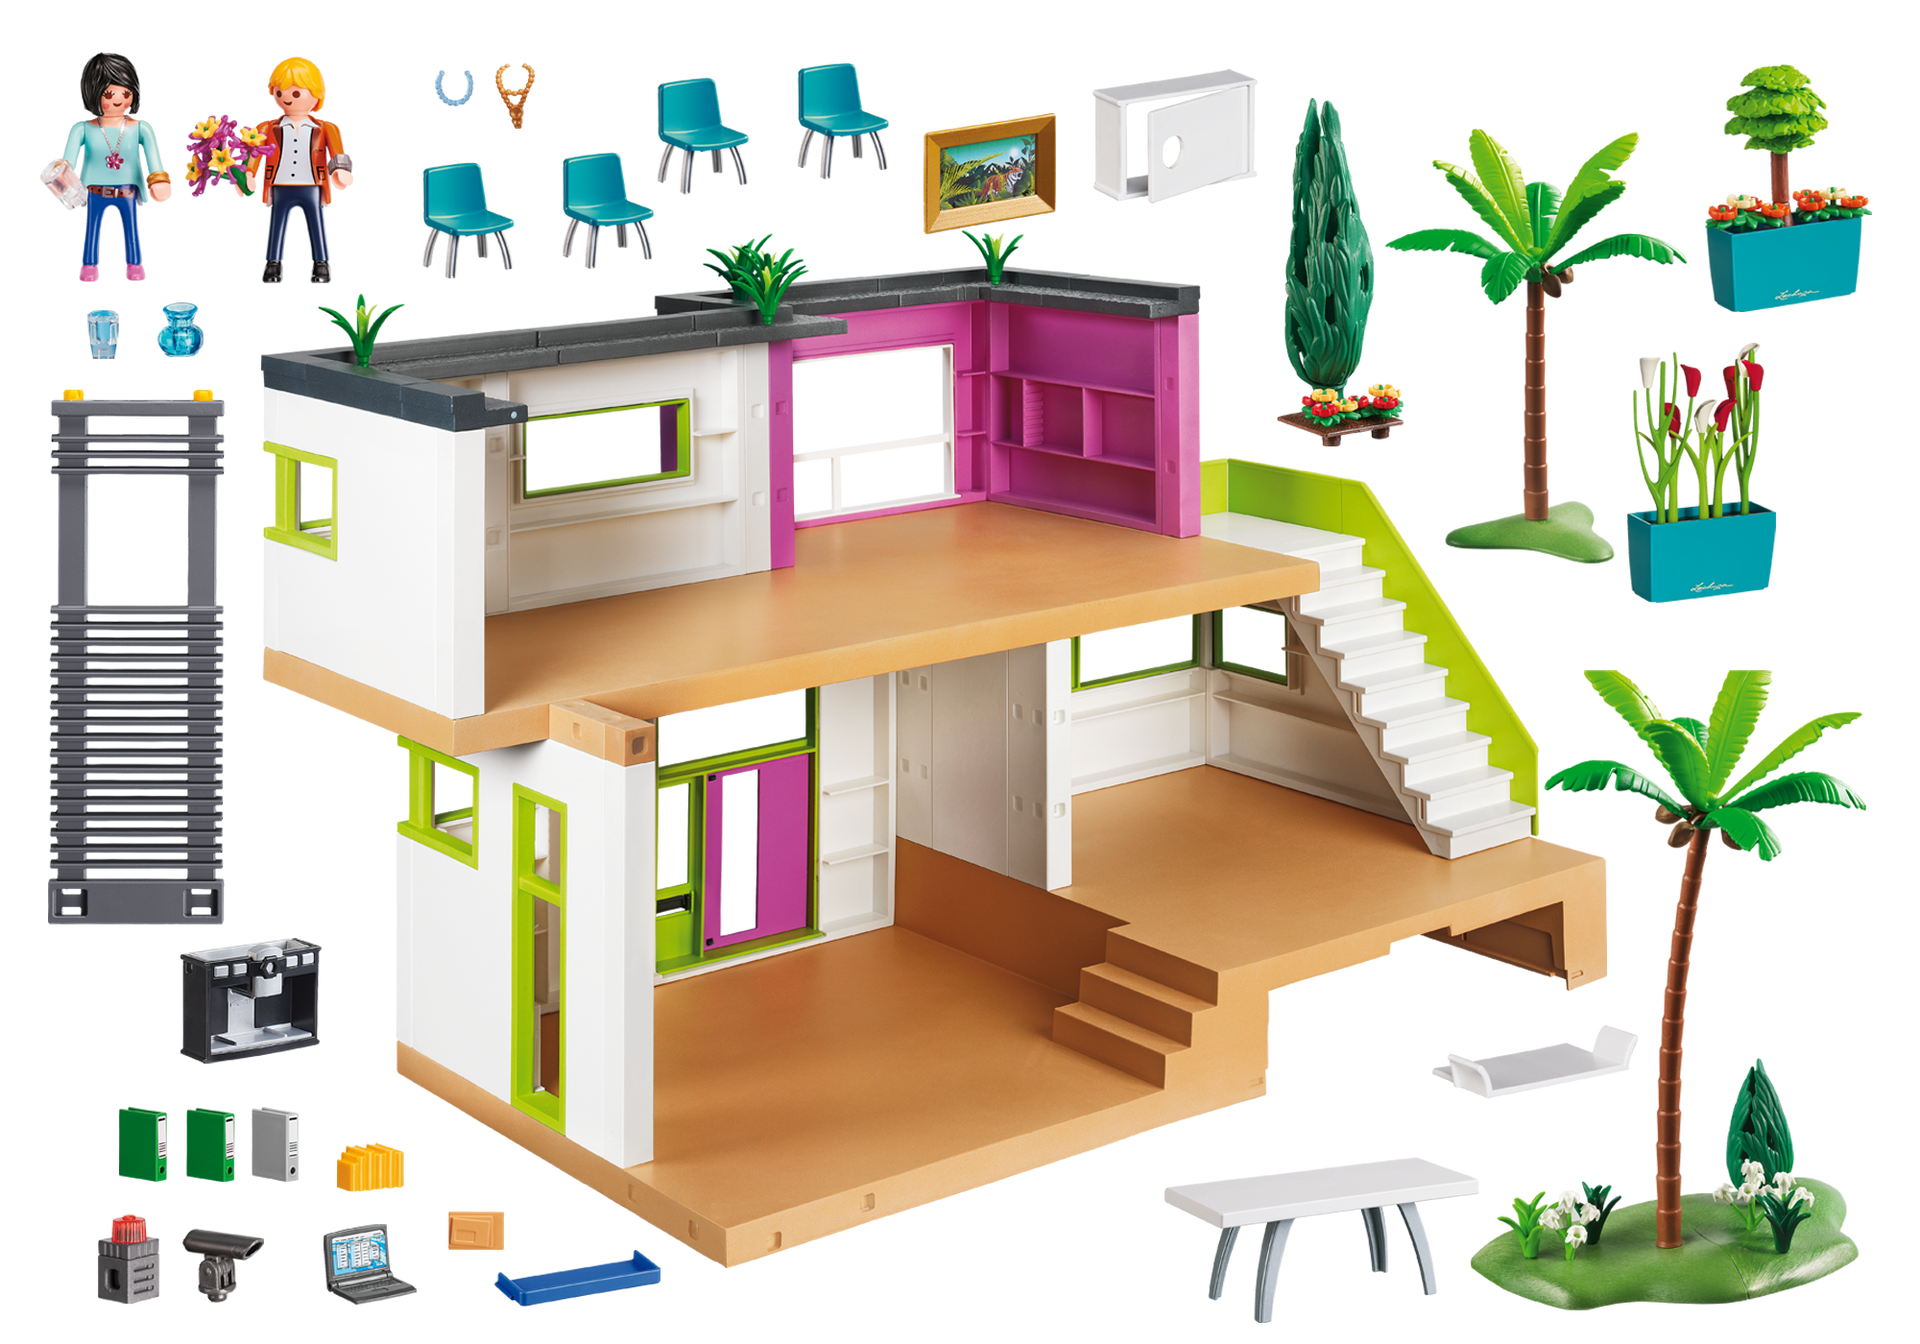 Maison moderne 5574 playmobil france for Accessoire maison